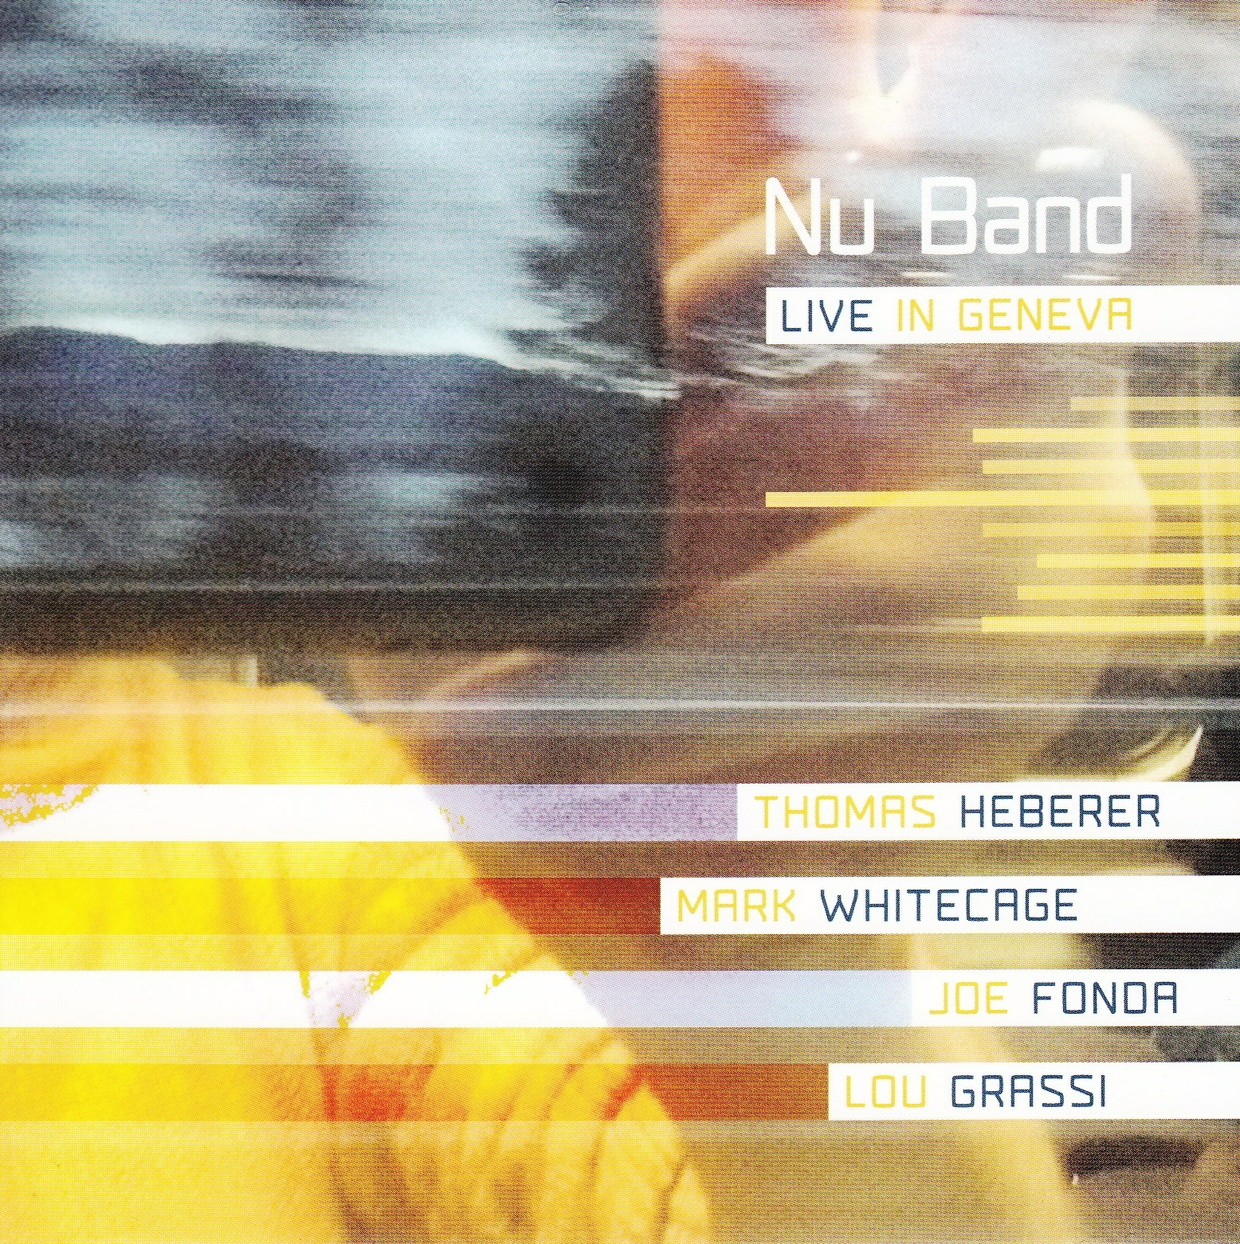 MW948 Live In Geneva by The NU Band